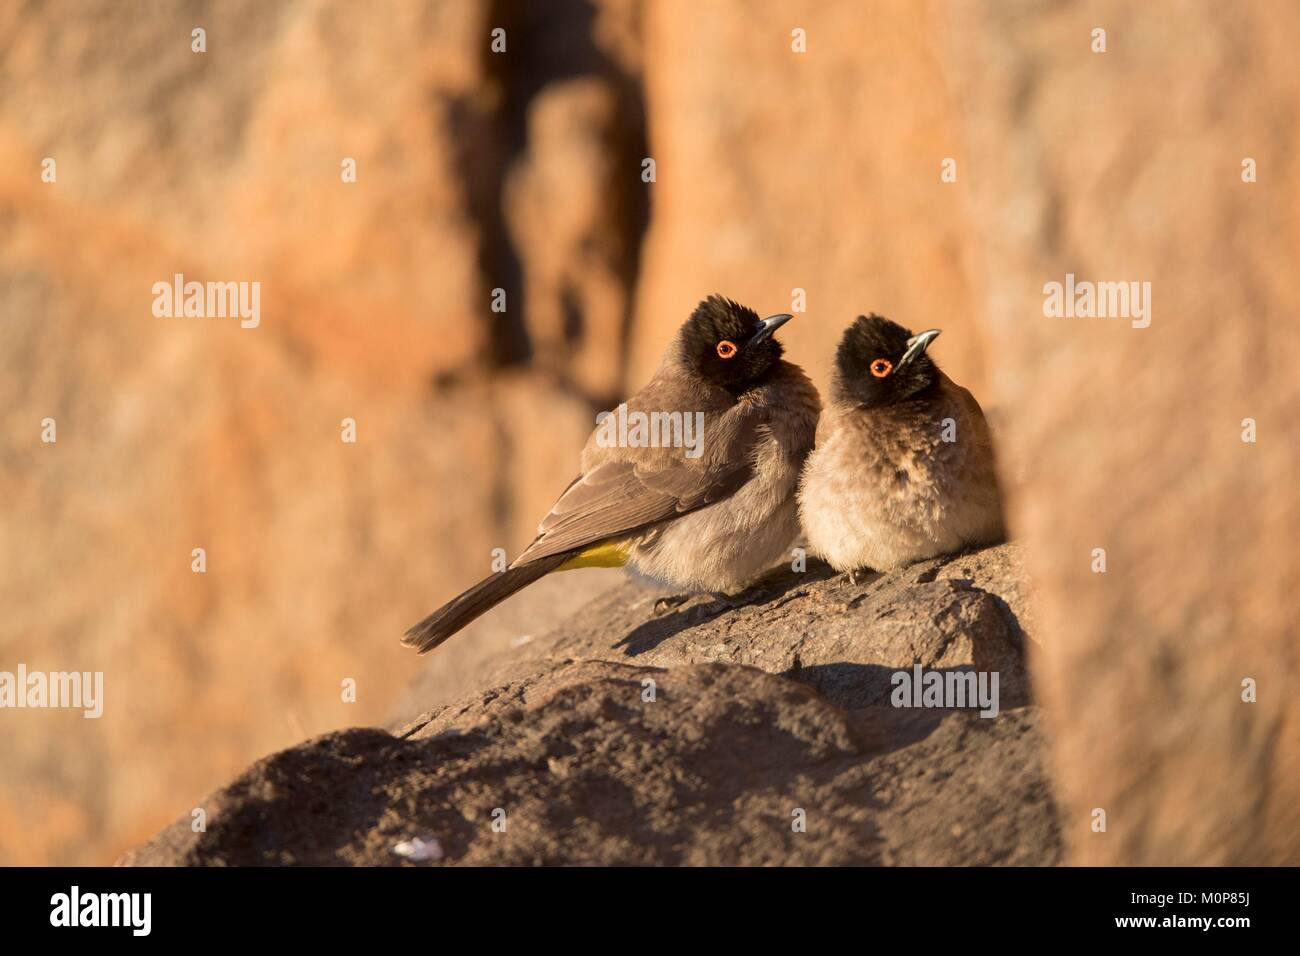 South Africa,Upper Karoo,African red-eyed bulbul or black-fronted bulbul (Pycnonotus nigricans),resting in a cliff,warming Stock Photo